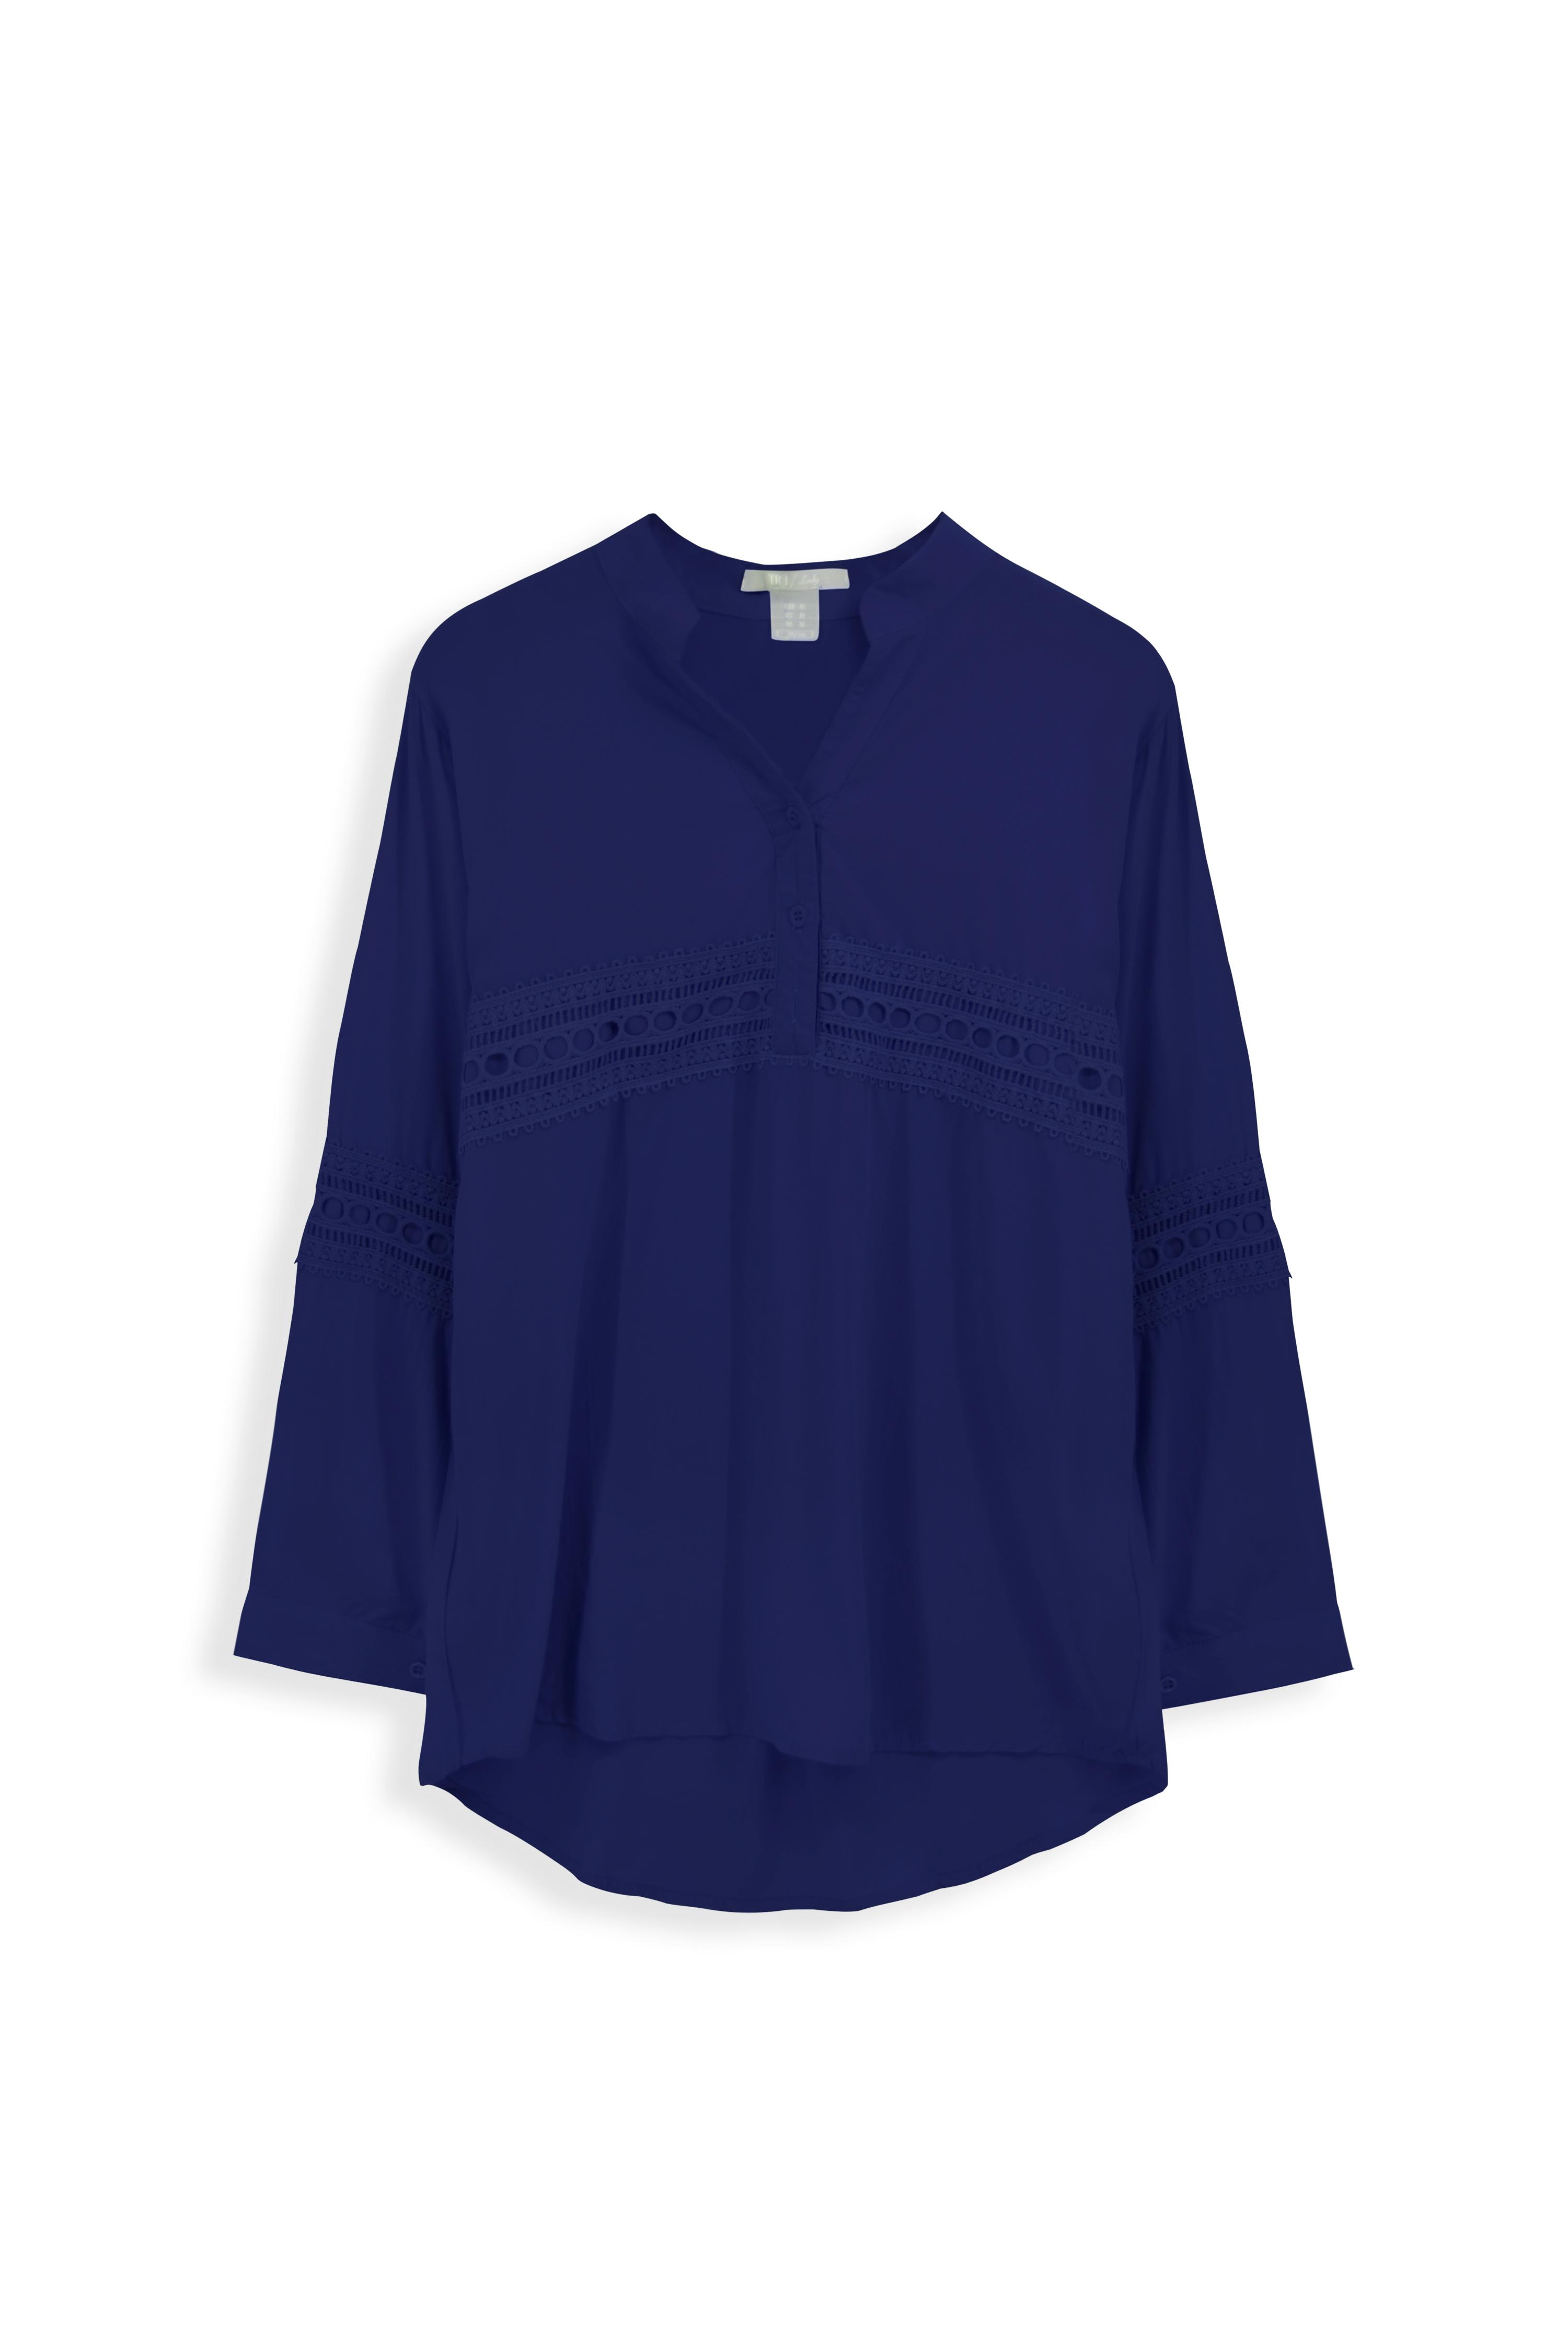 Lady Blouse Cotton (LBC-06001)